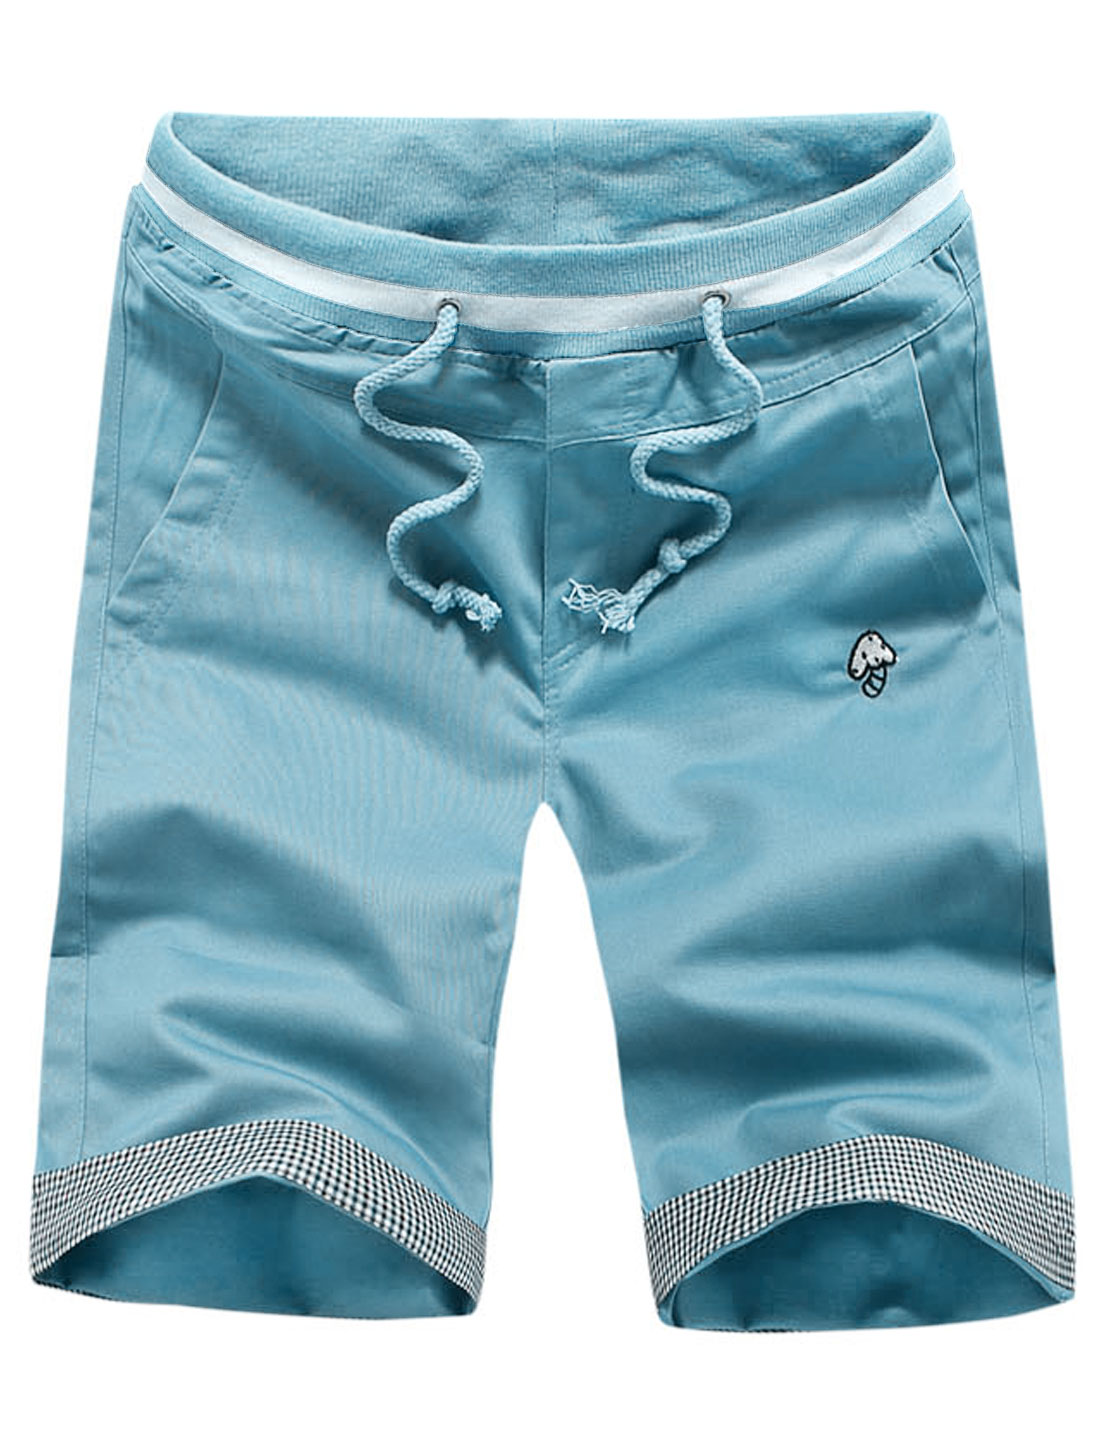 Men Mushroom Embroidery Patch Pockets Back Slim Shorts Light Blue W28